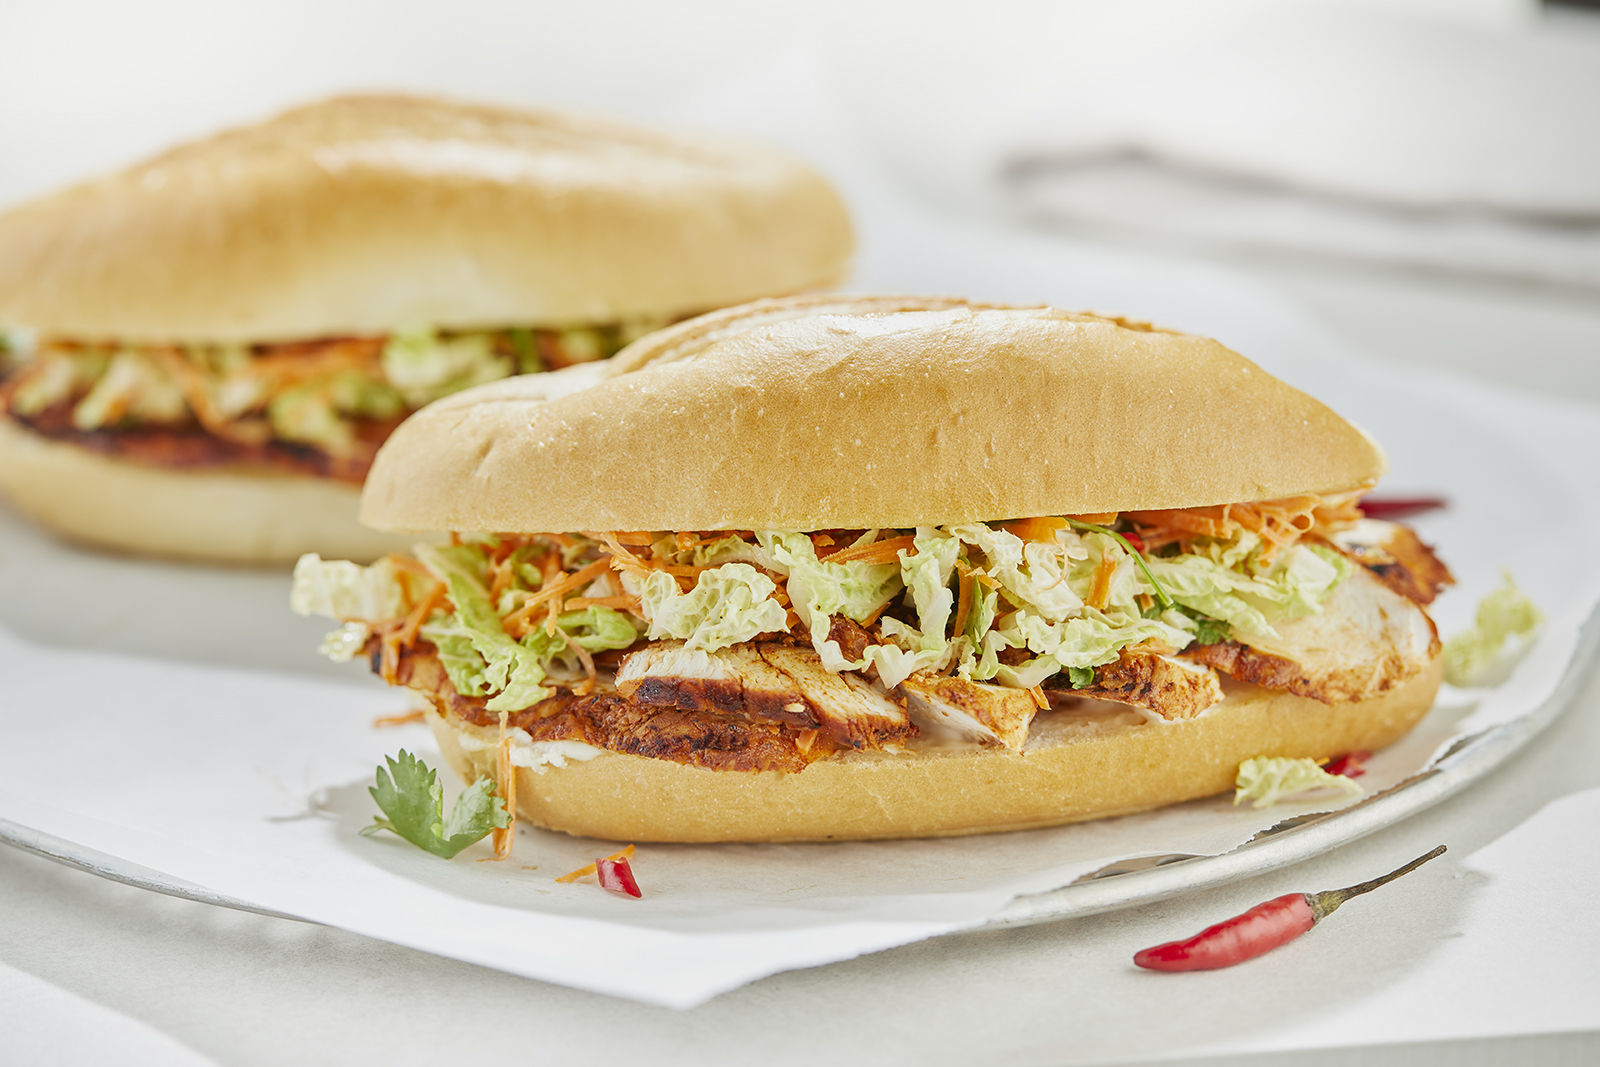 CHILI CHICKEN BURGERS WITH SLAW